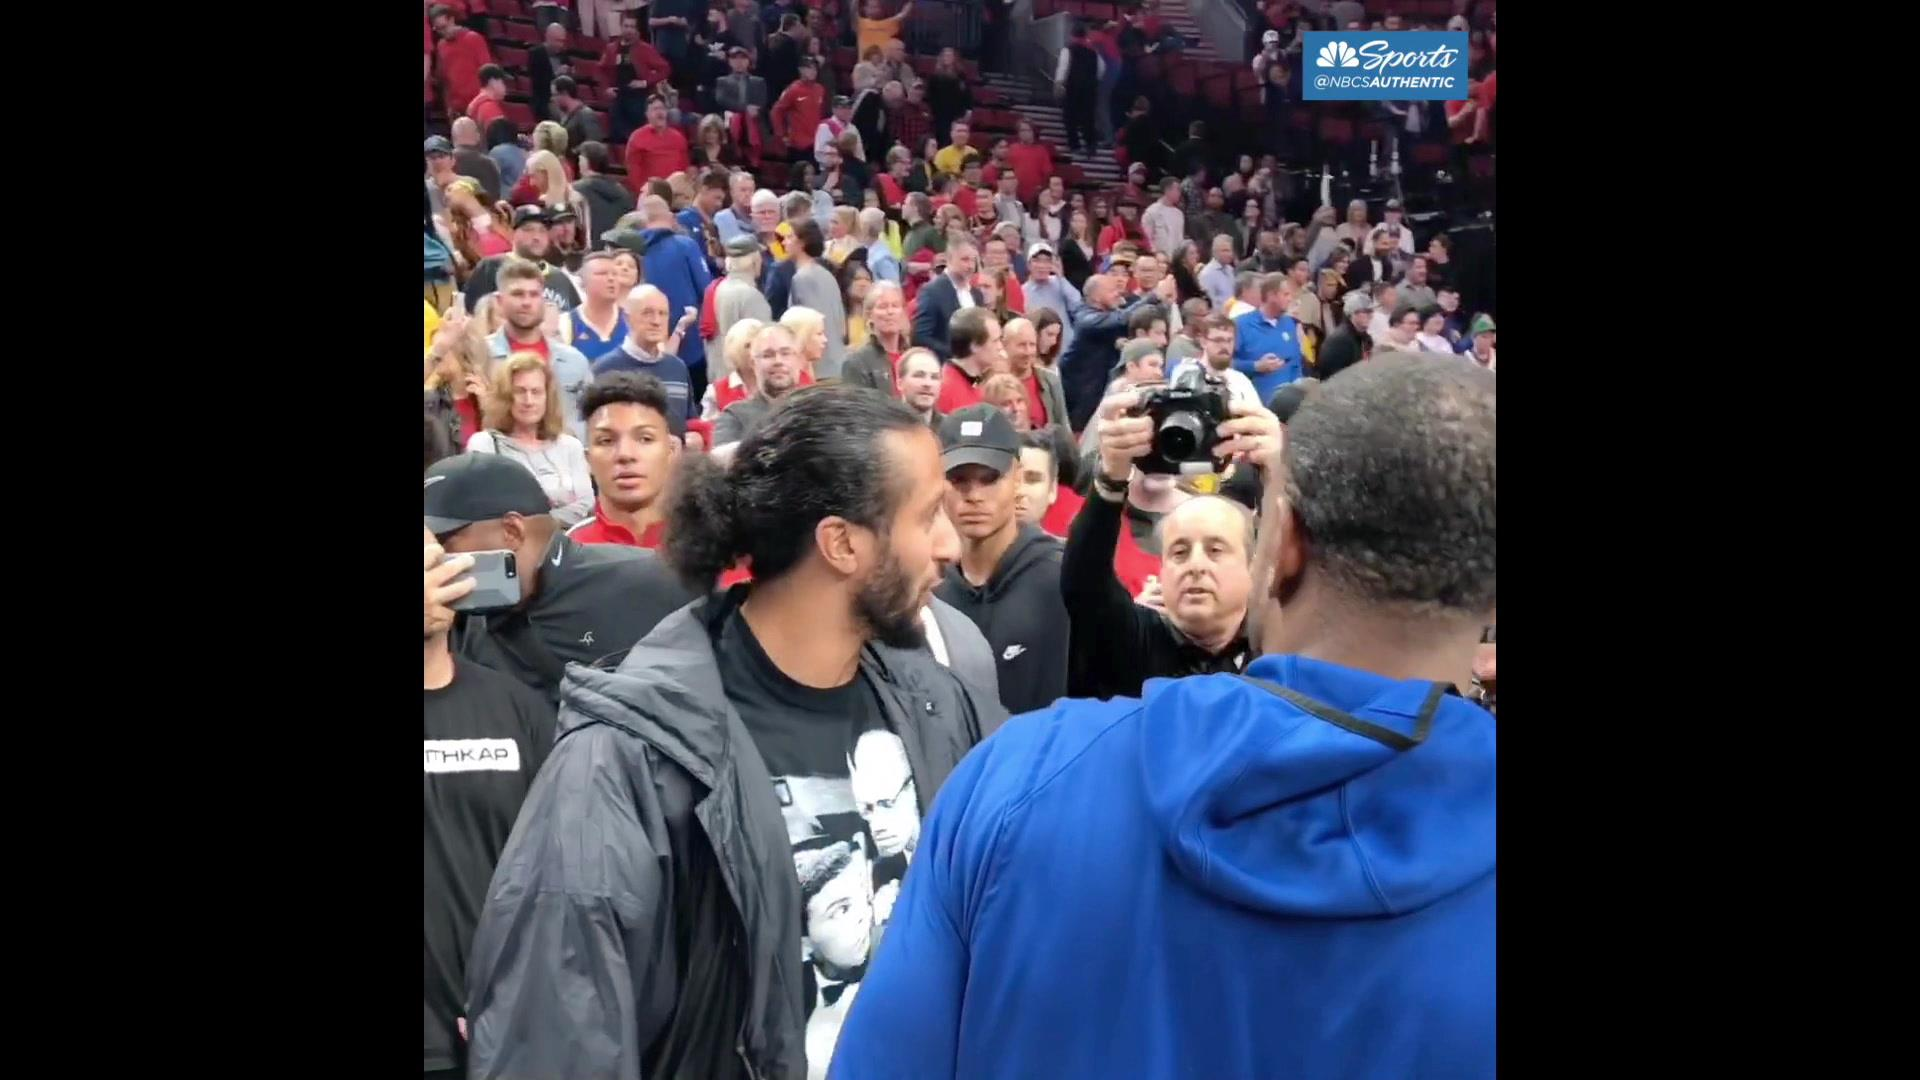 Colin Kaepernick meets with Andre Iguodala, DeMarcus Cousins after Game 4